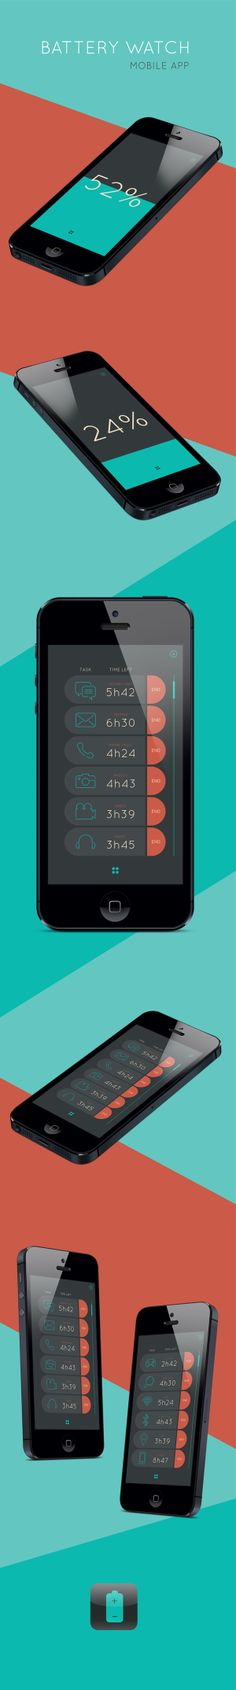 Concept mobile app - Battery Watch by Jacqui Proenca, via Behance  / not sure about the highly rounded corners...